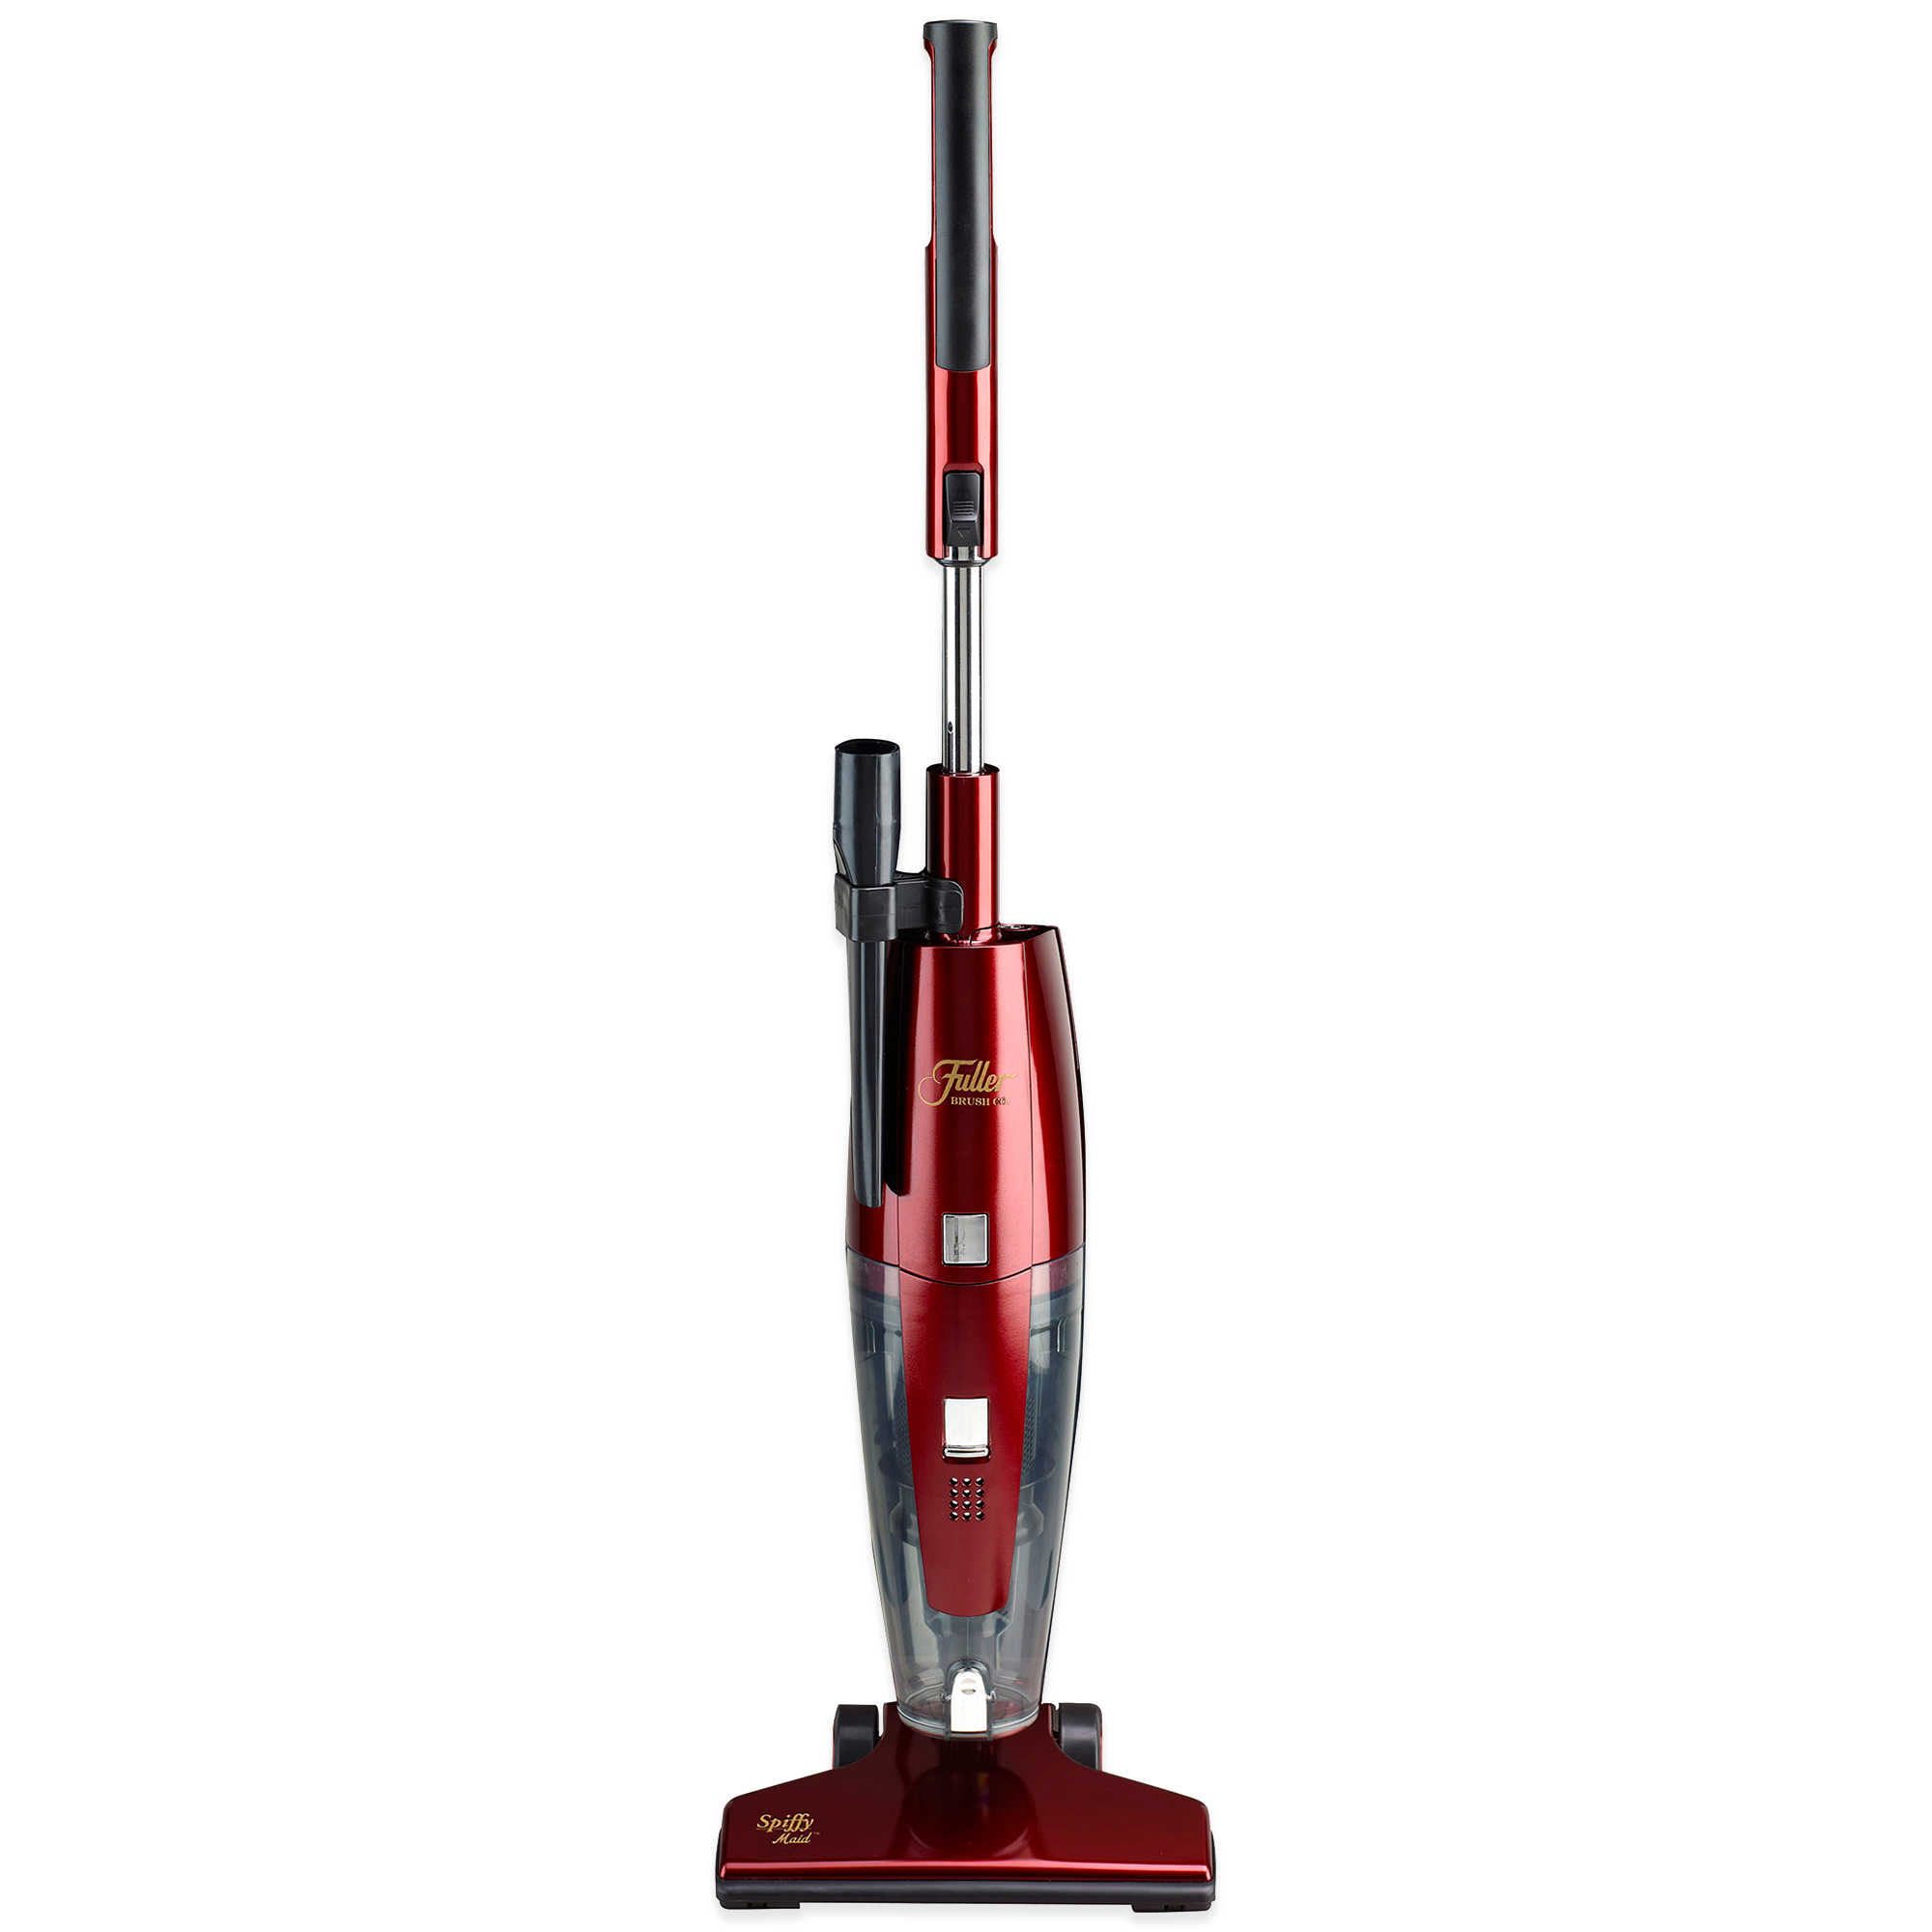 Dyson vacuum cleaners at bed bath and beyond - Image Of Fuller Brush Spiffy Maid Bagless Stick Vacuum